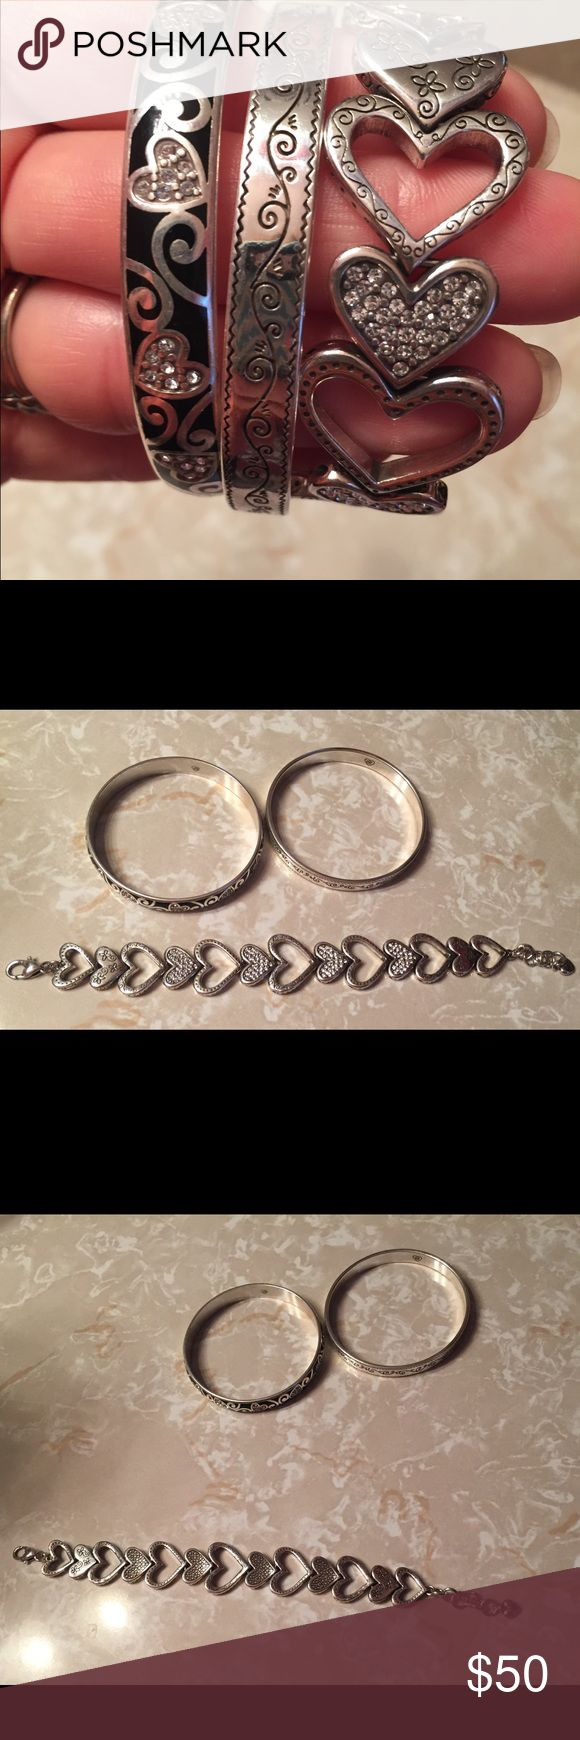 Brighton Bracelets Three Brighton Bracelets. Authentic. Silver, some stones, bangles have black design. Heart bracelet has different print on each side. These are gorgeous and would make a great gift! Were very expensive! Look great stacked together! Thank you kindly! 😊 Brighton Jewelry Bracelets